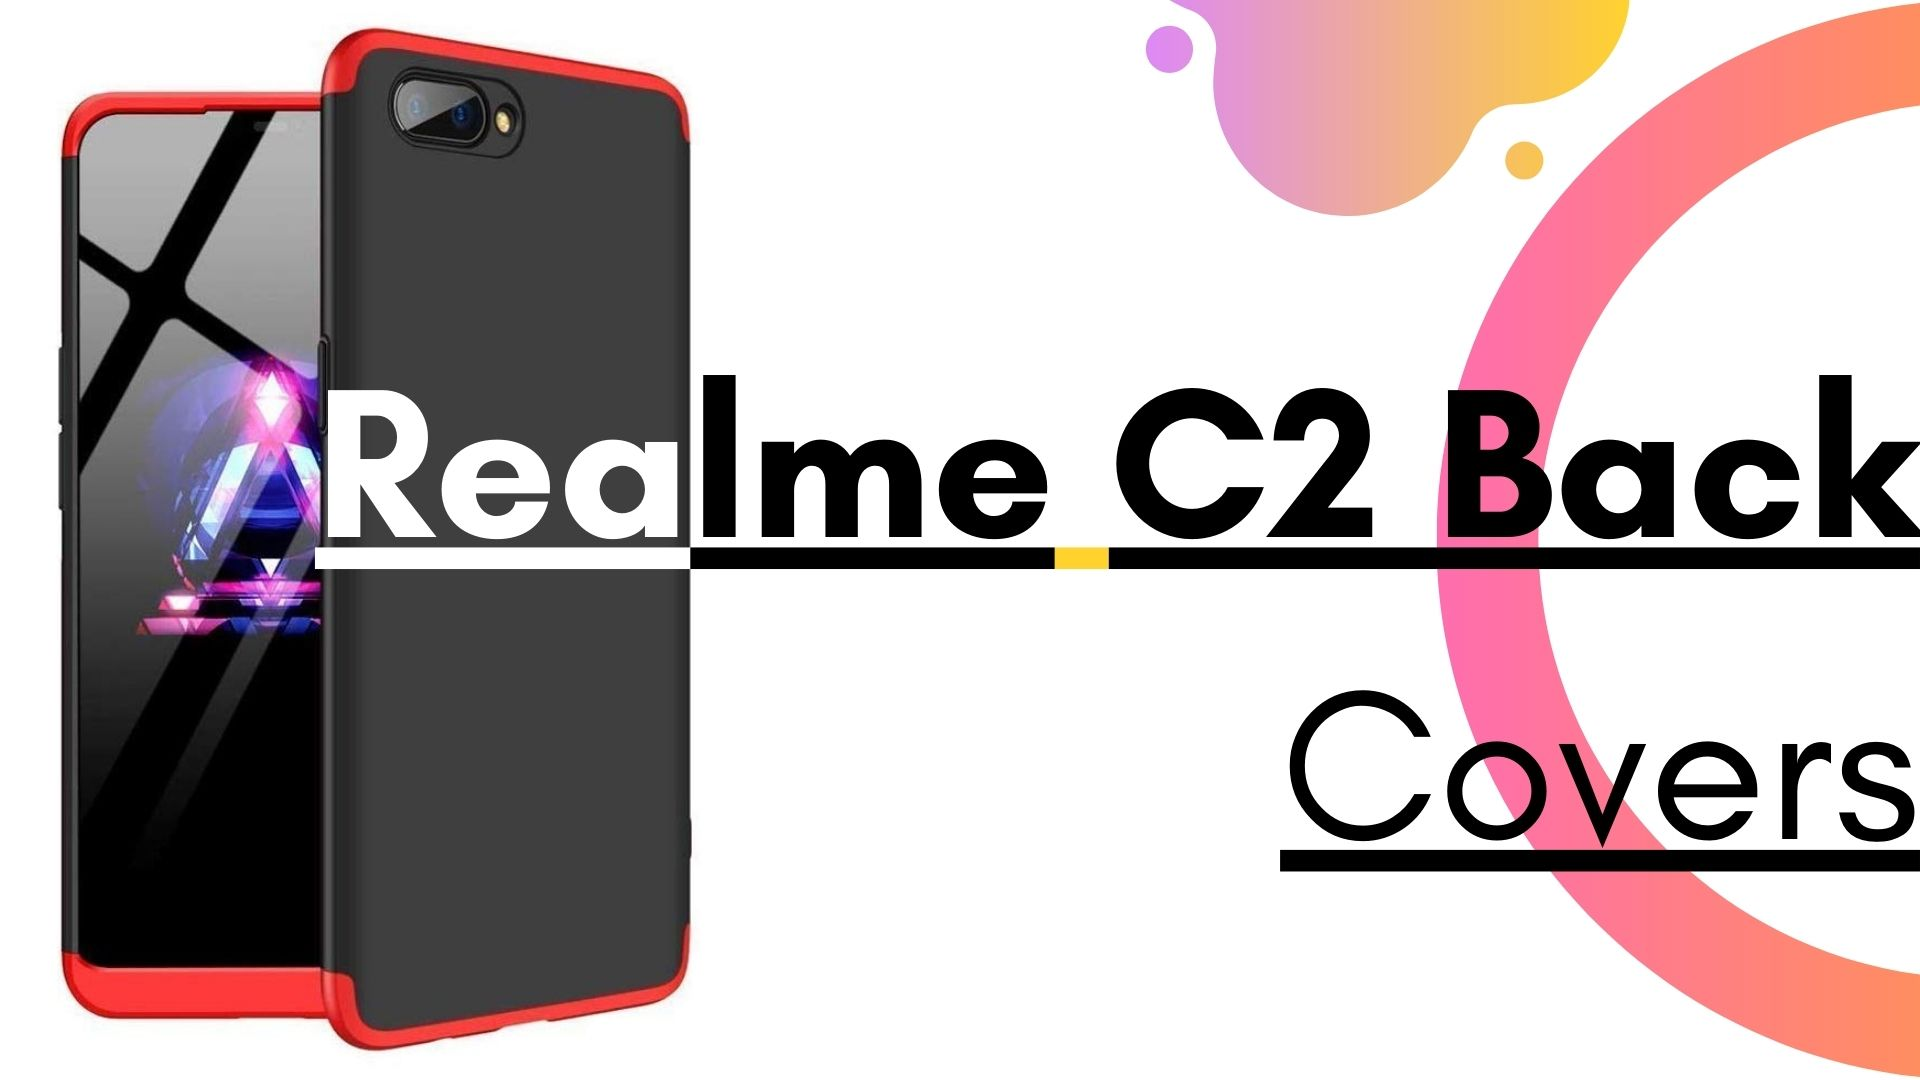 Realme C2 Back Covers